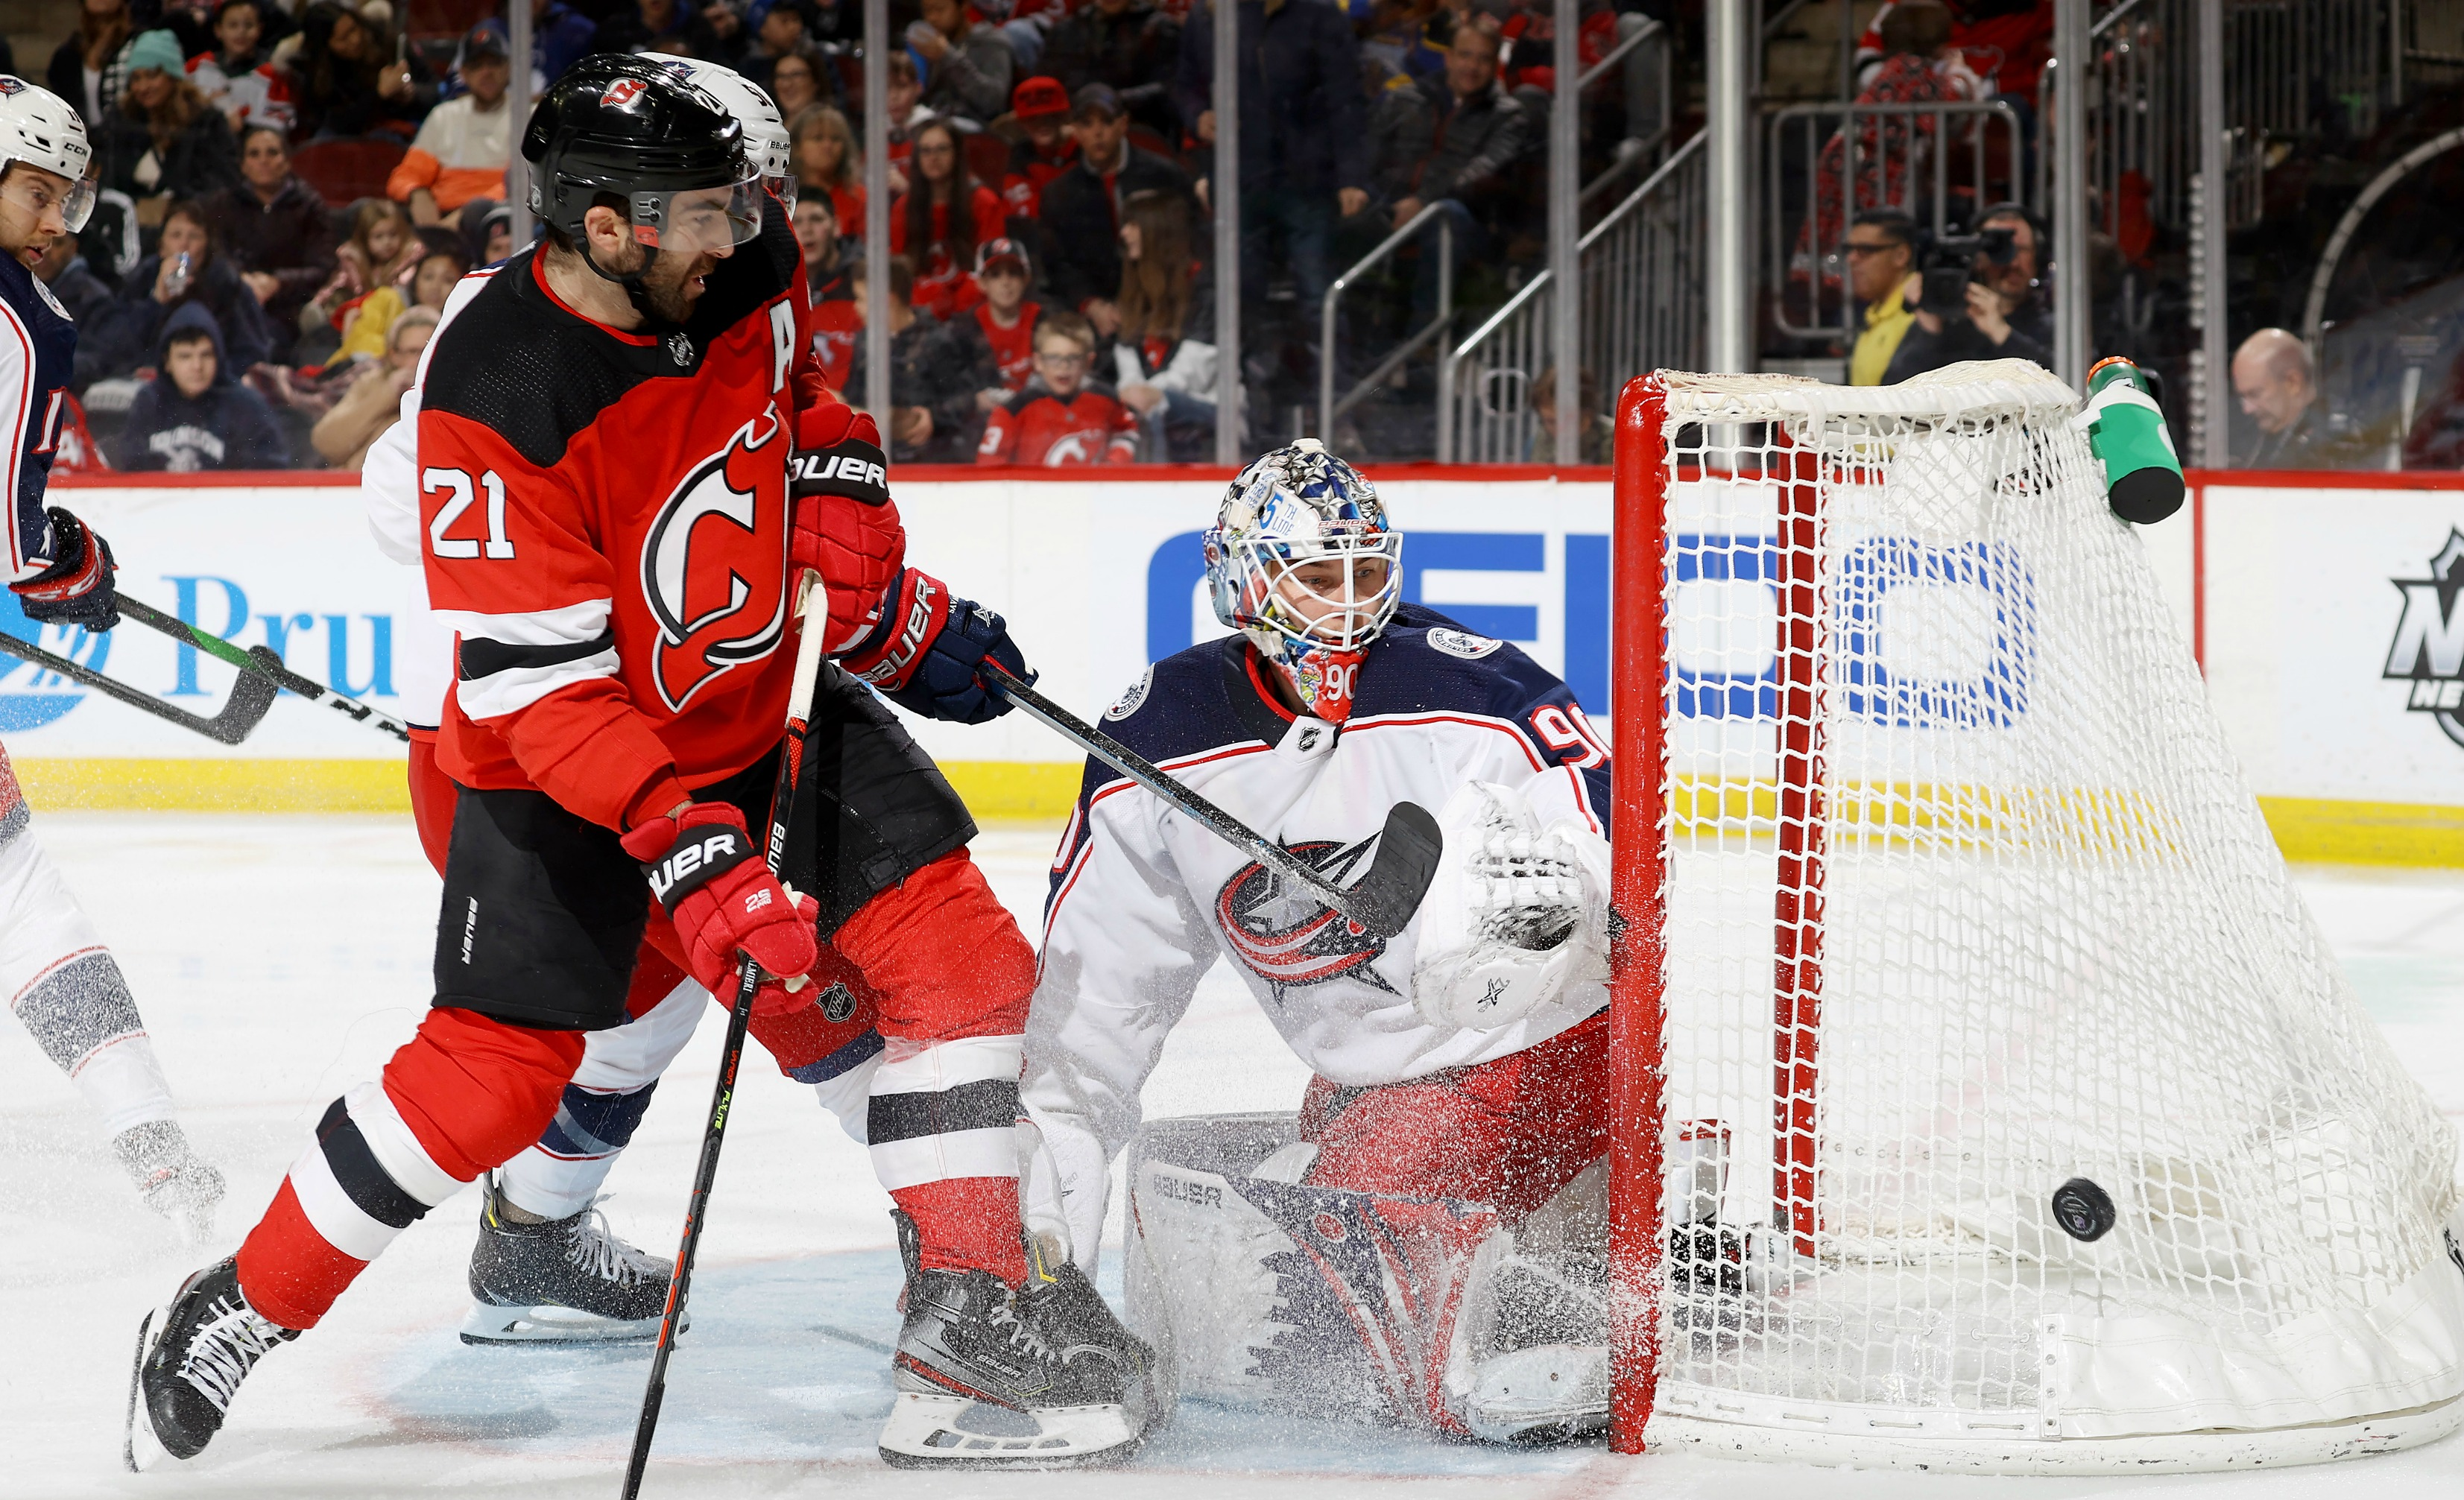 Blackwood Makes 52 Saves, Devils Top Jackets In Shootout